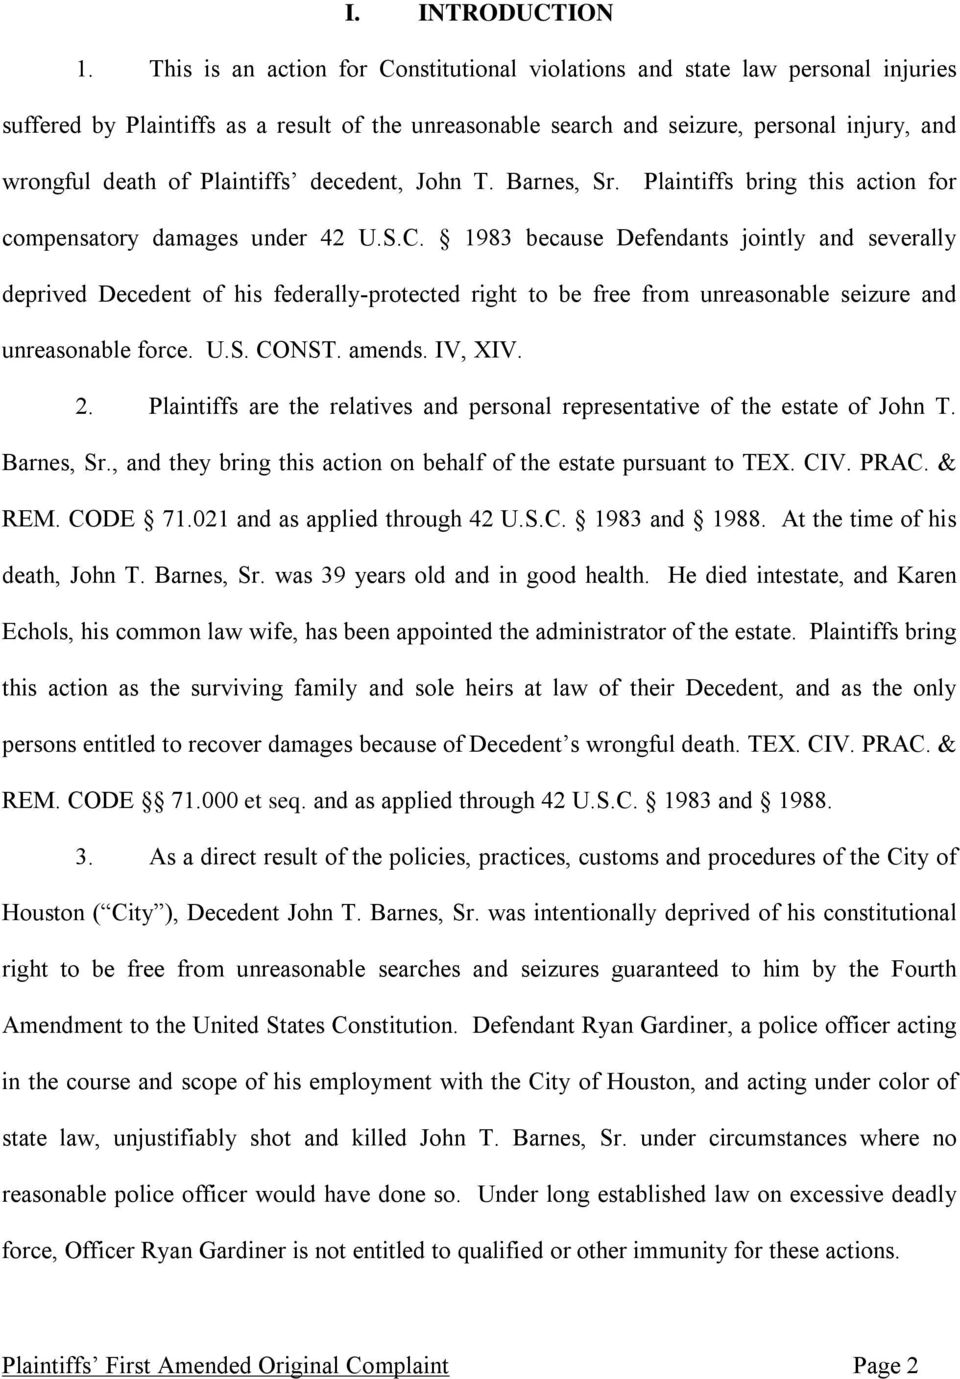 Plaintiffs decedent, John T. Barnes, Sr. Plaintiffs bring this action for compensatory damages under 42 U.S.C.